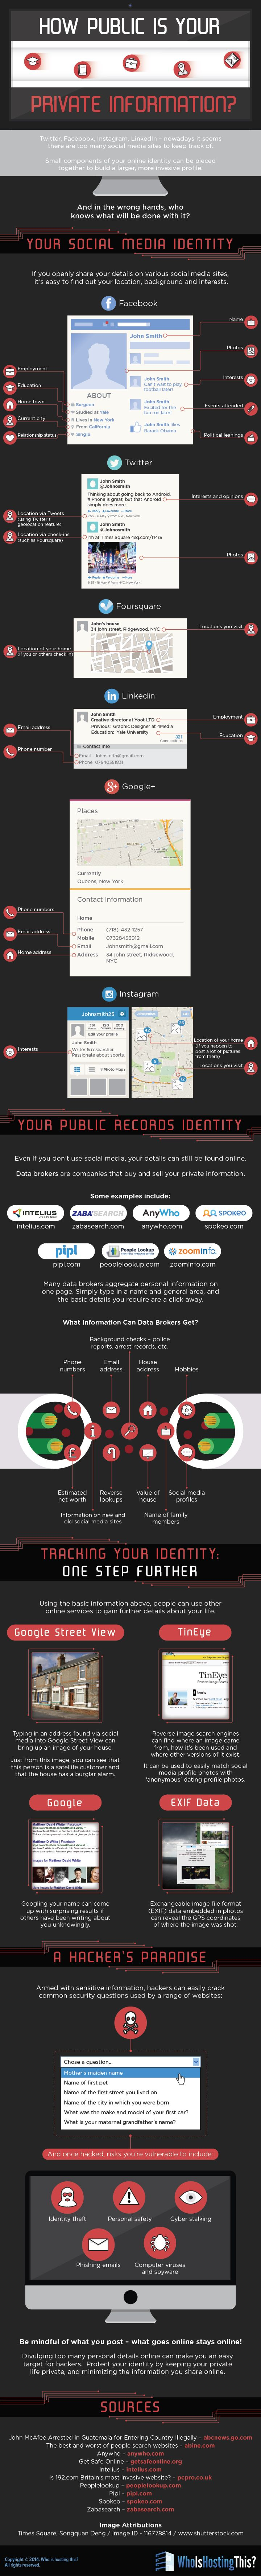 Infographie 159 - personal data what others can see in social media